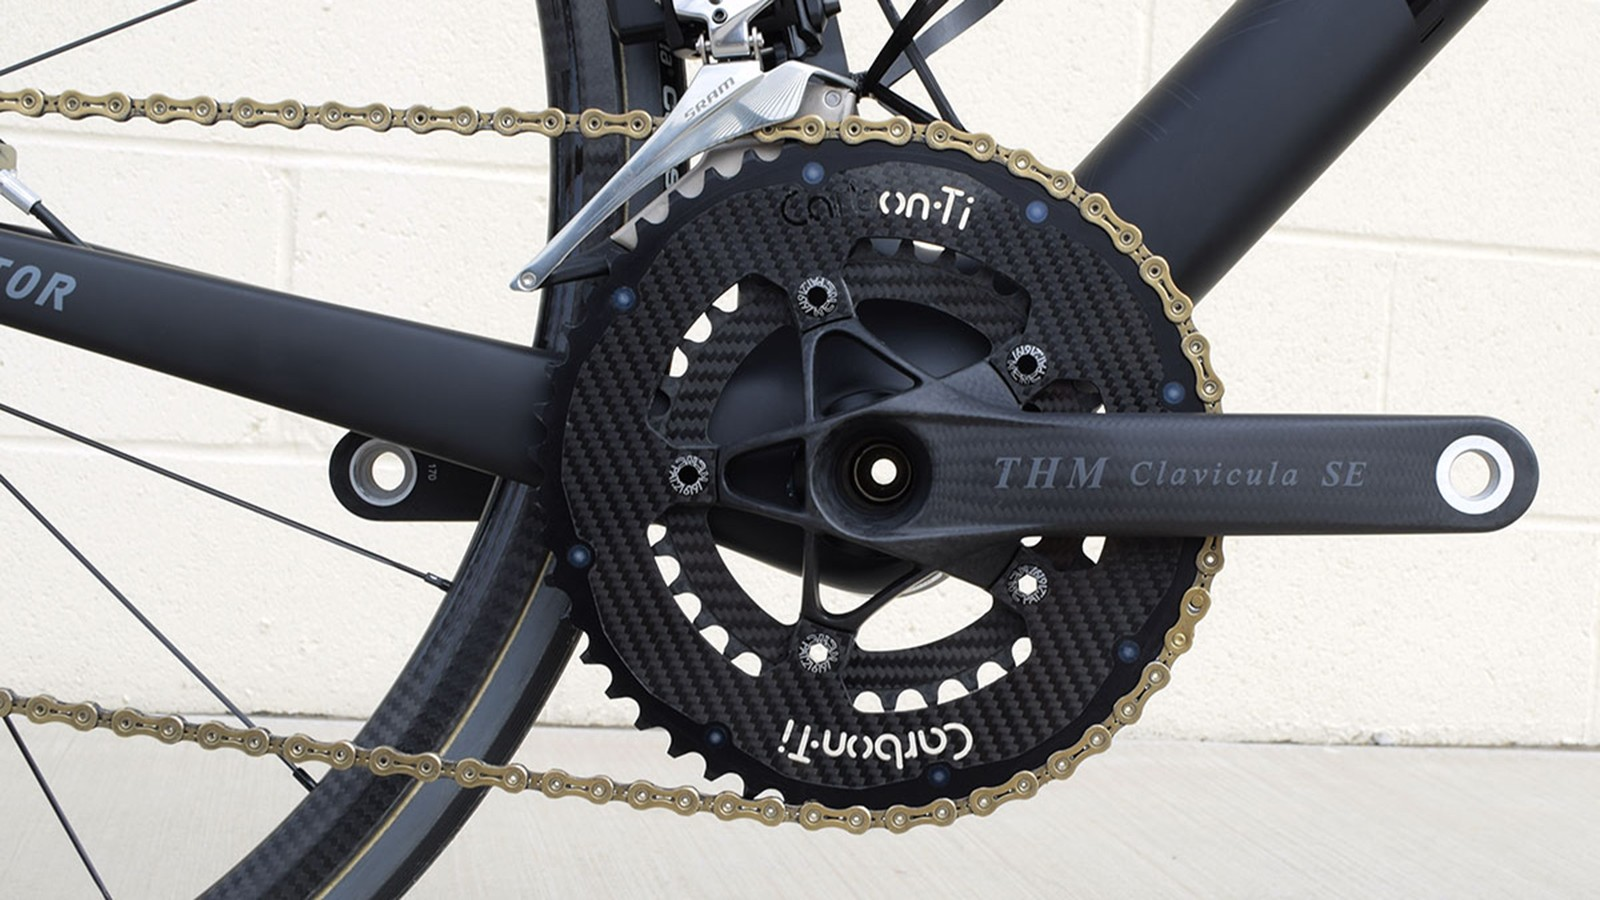 Thm Clavicula SE cranks with some Carbon-ti and Fibrelyte chainrings